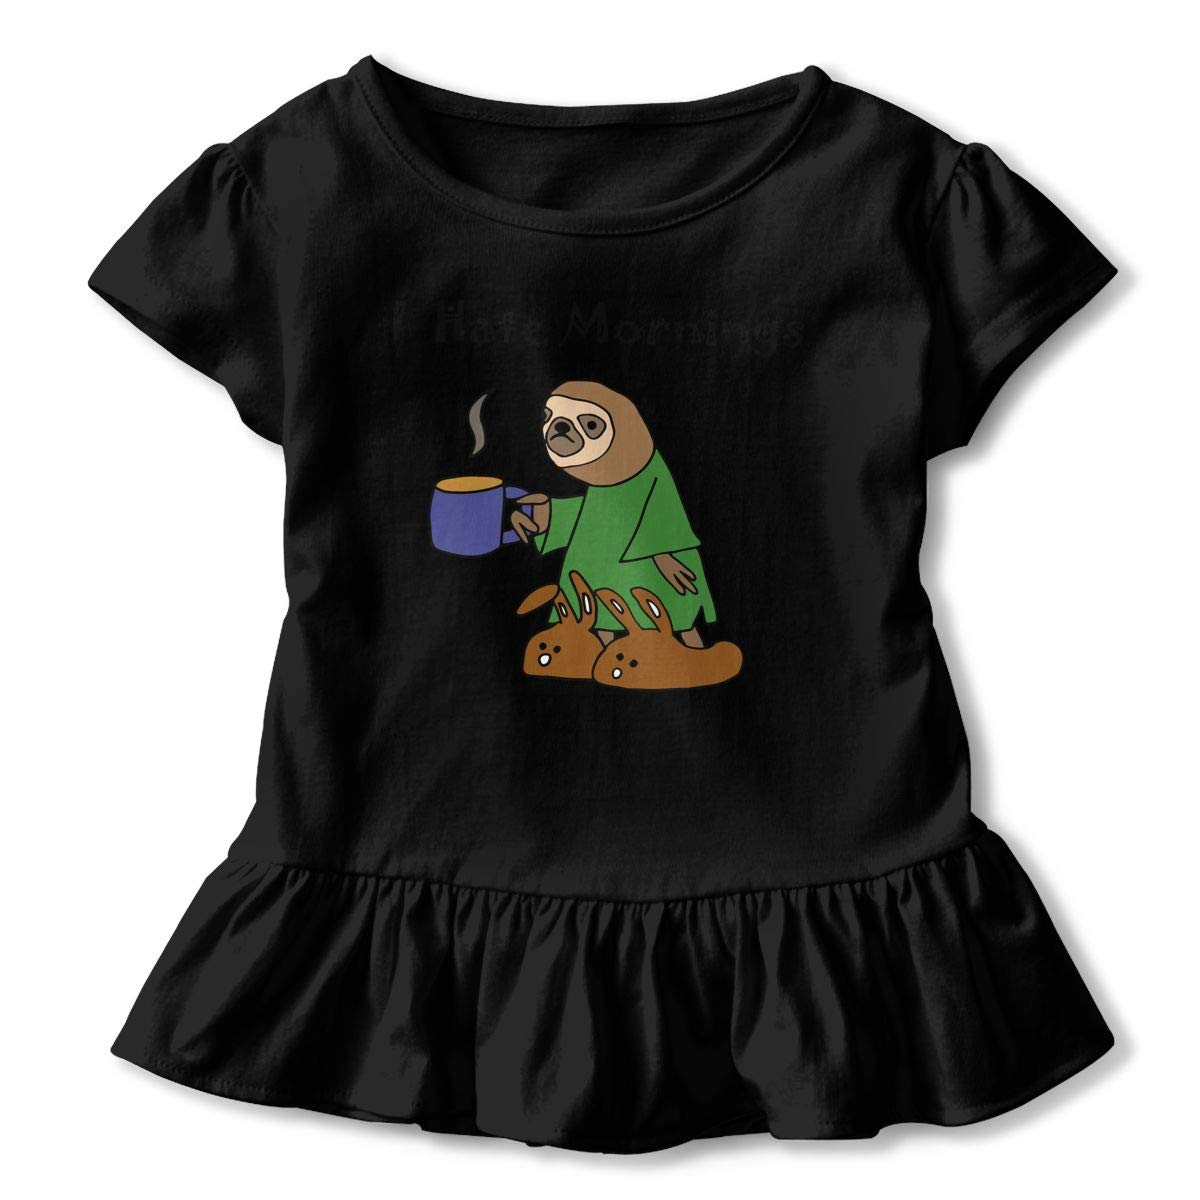 SHIRT1-KIDS Funny Sloth Hates Mornings Toddler//Infant Girls Short Sleeve T-Shirts Ruffles Shirt Tee for 2-6T